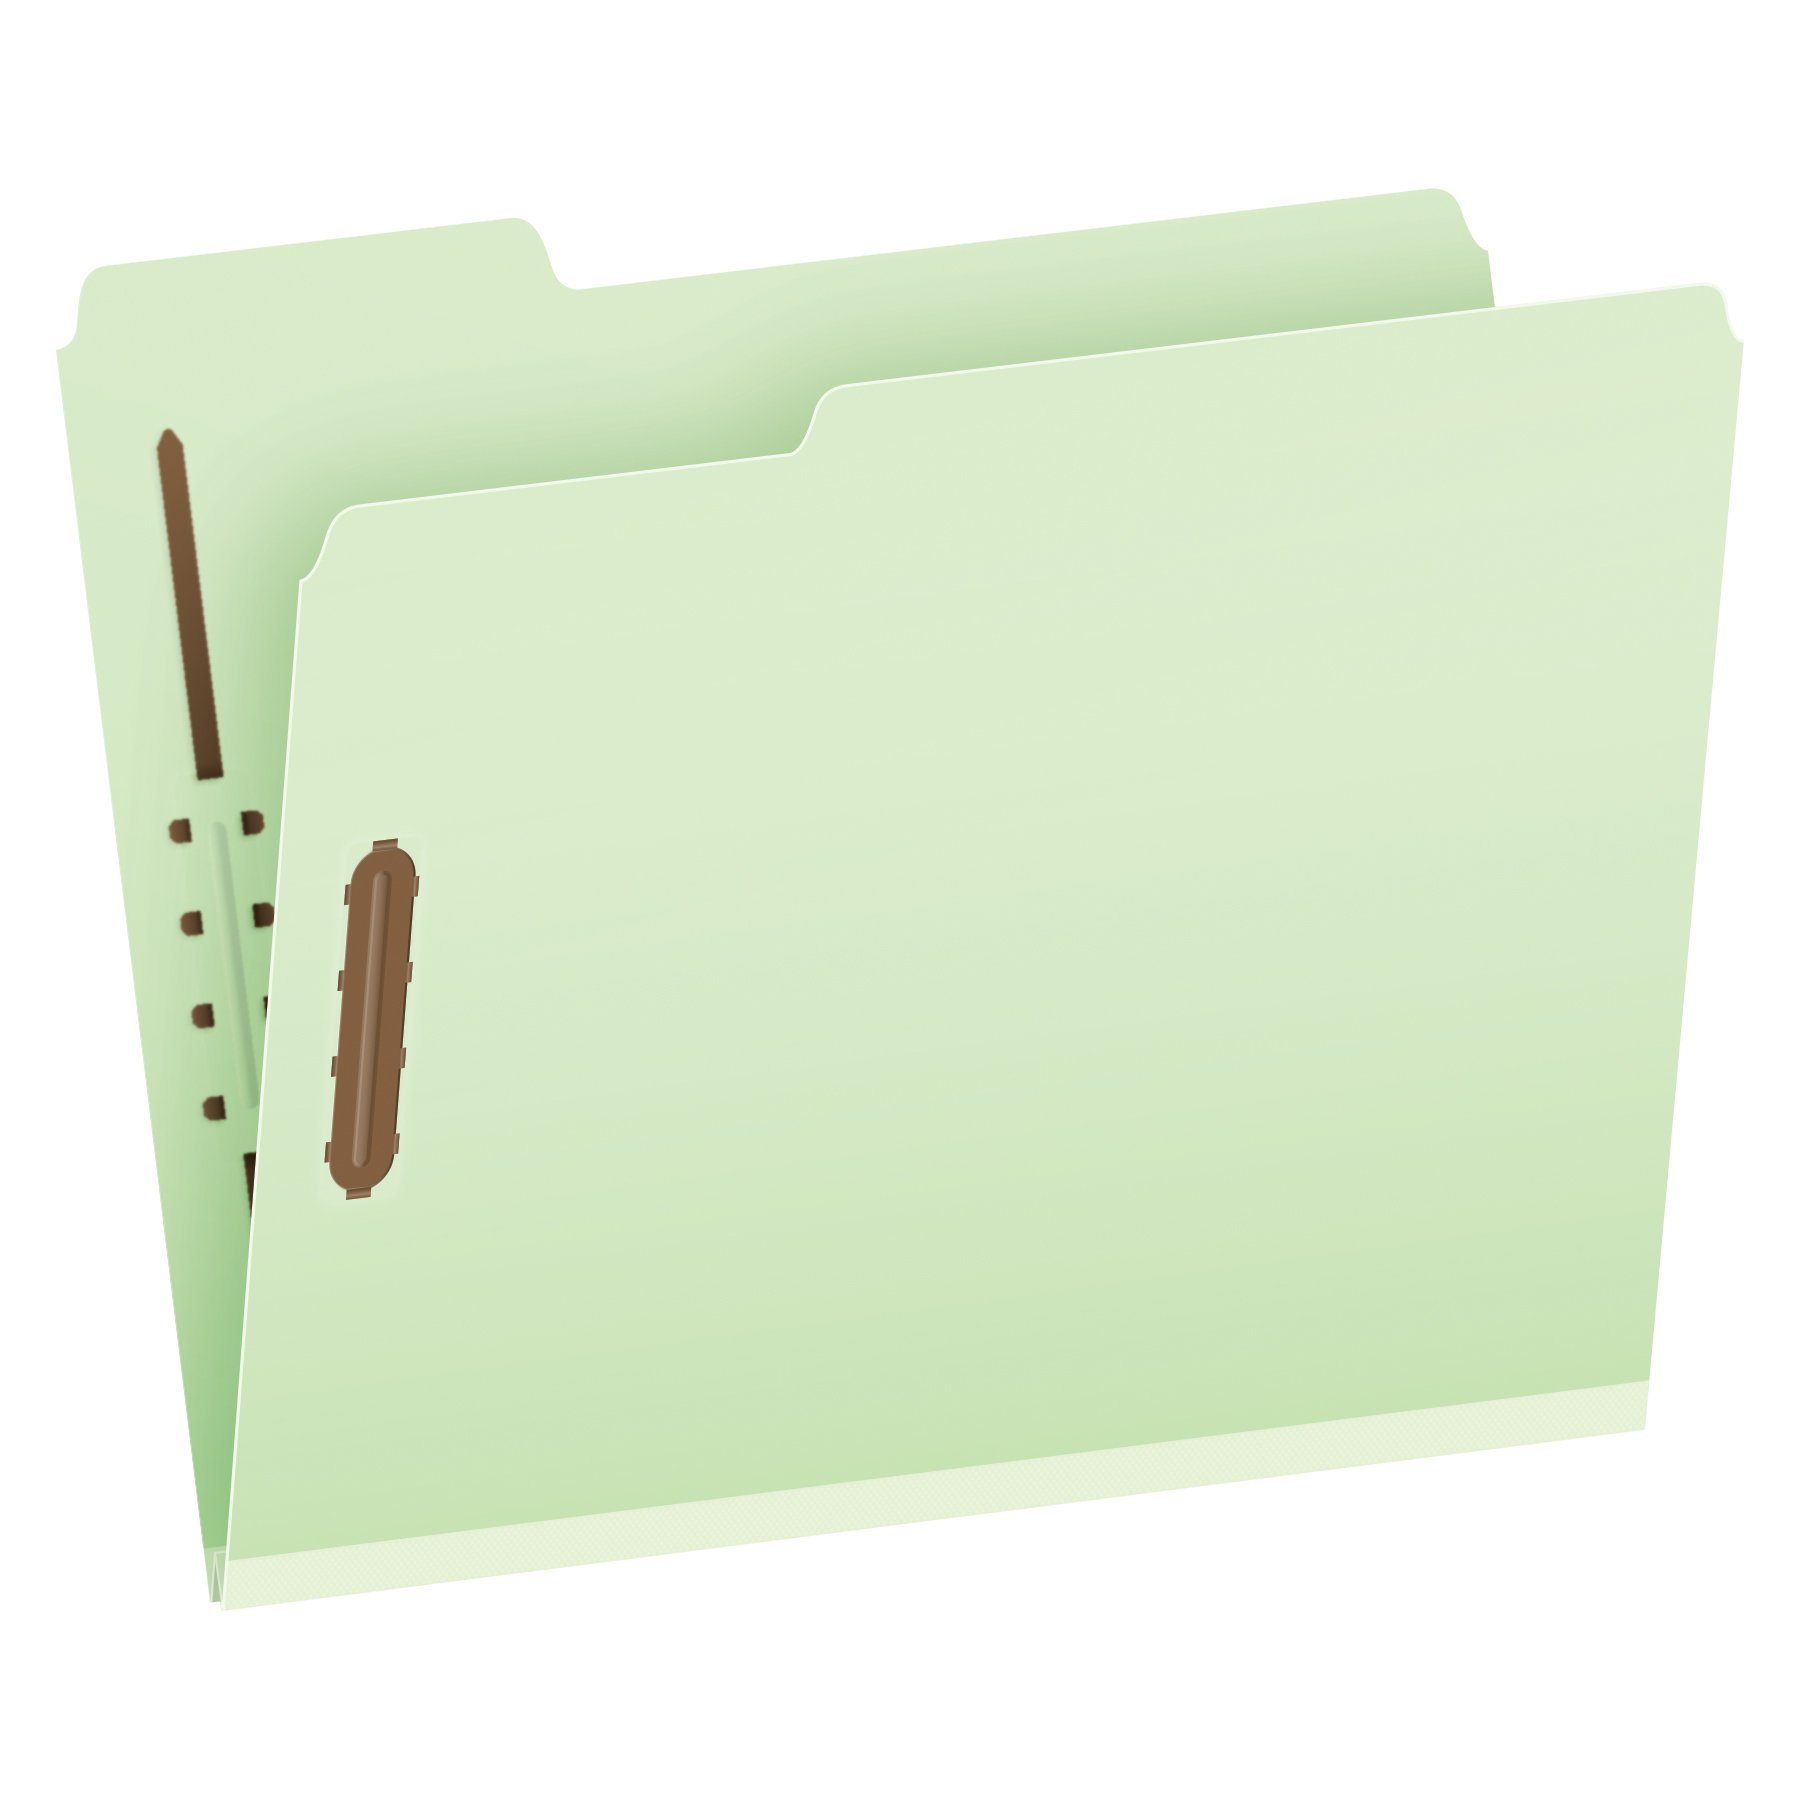 Pendaflex Pressboard Fastener Folders, Letter Size, Light Green, 2'' Expansion, 1/3 Cut, 25/BX (17181) by Pendaflex